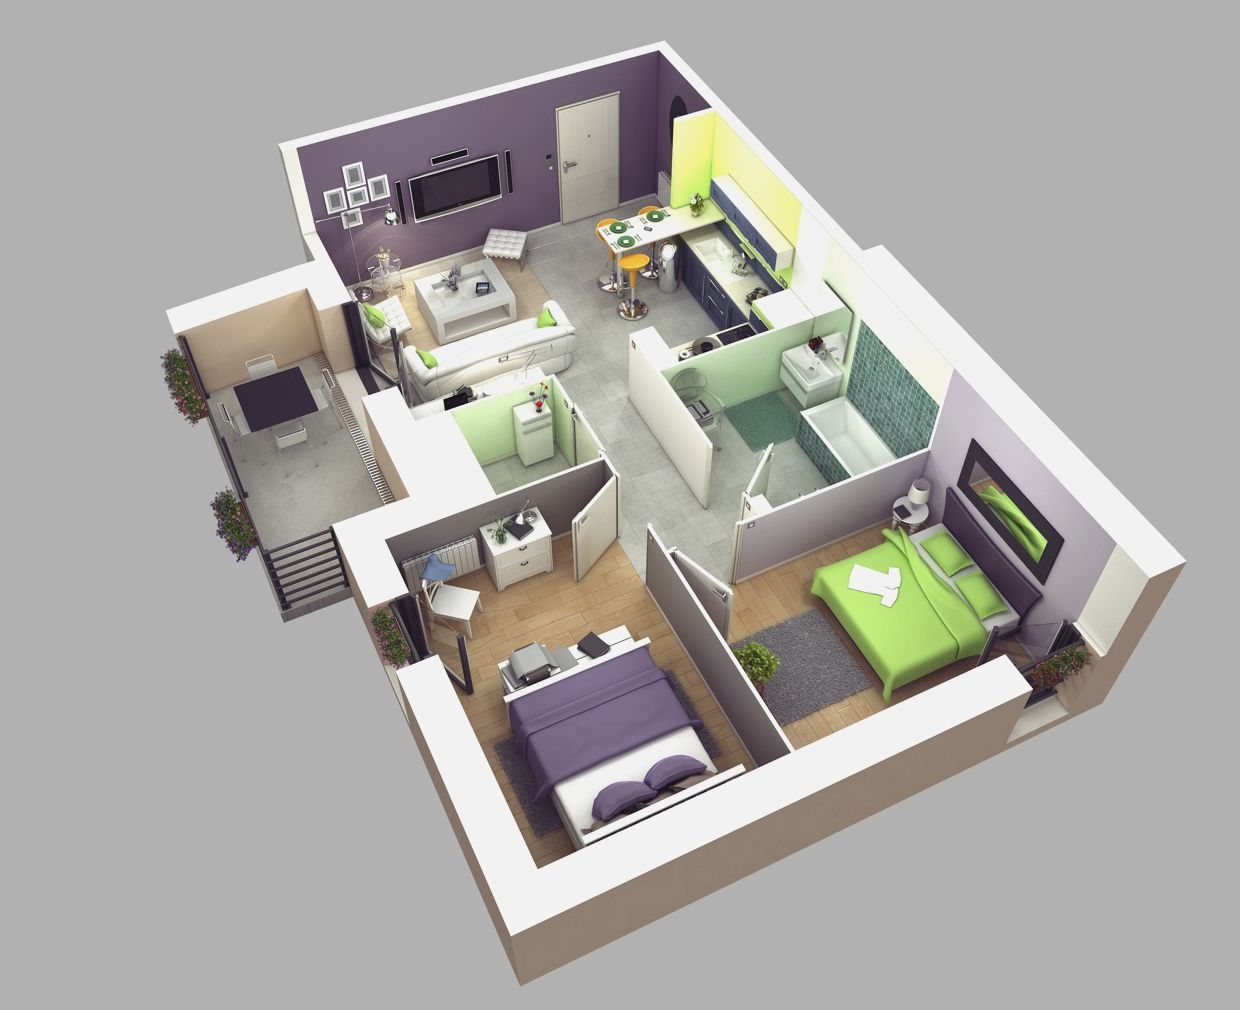 3 bedroom house designs 3d - Buscar con Google | Home in 2018 ... on bungalow house plans with basement, bungalow narrow lot house plan, bungalow floor plans, bungalow house designs, bungalow house plans french, bungalow house plans with attached garage, bungalow plan 3 bed room, bungalow house plans vintage, bungalow house plans beach, bungalow house plans with balcony, bungalow house plans in the philippines,